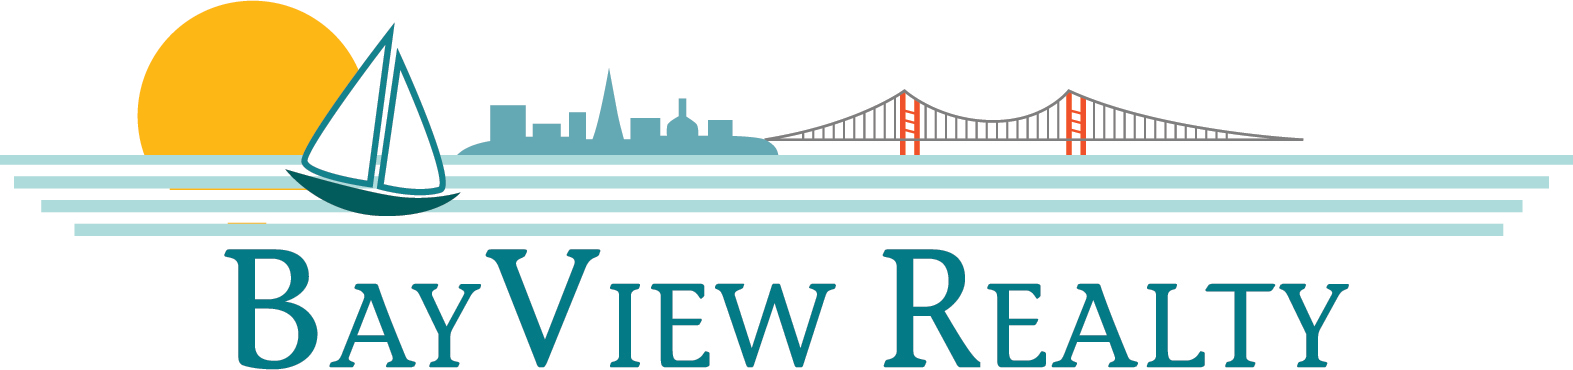 Bayview Realty Logo